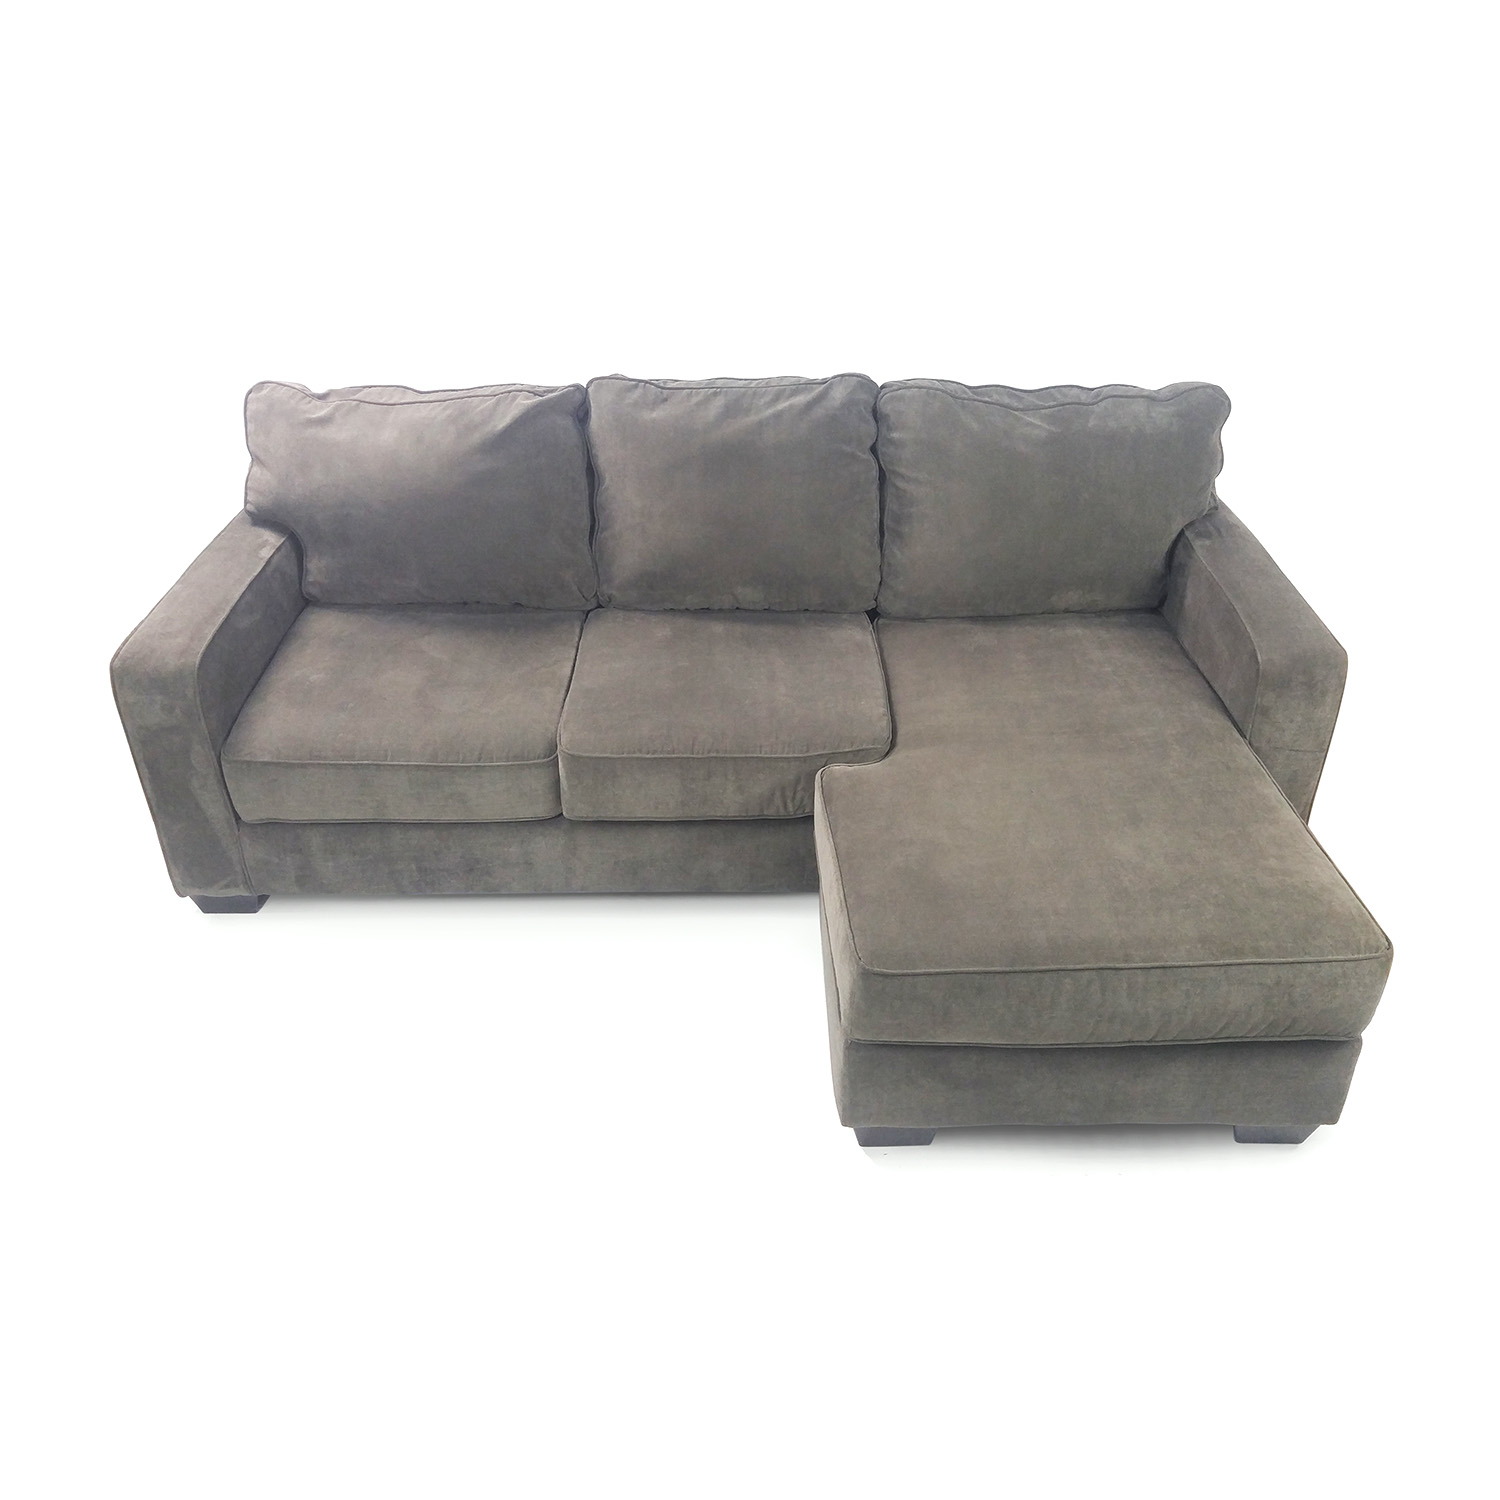 Hodan sofa chaise ashley furniture hodan marble sofa for Ashley sofa chaise